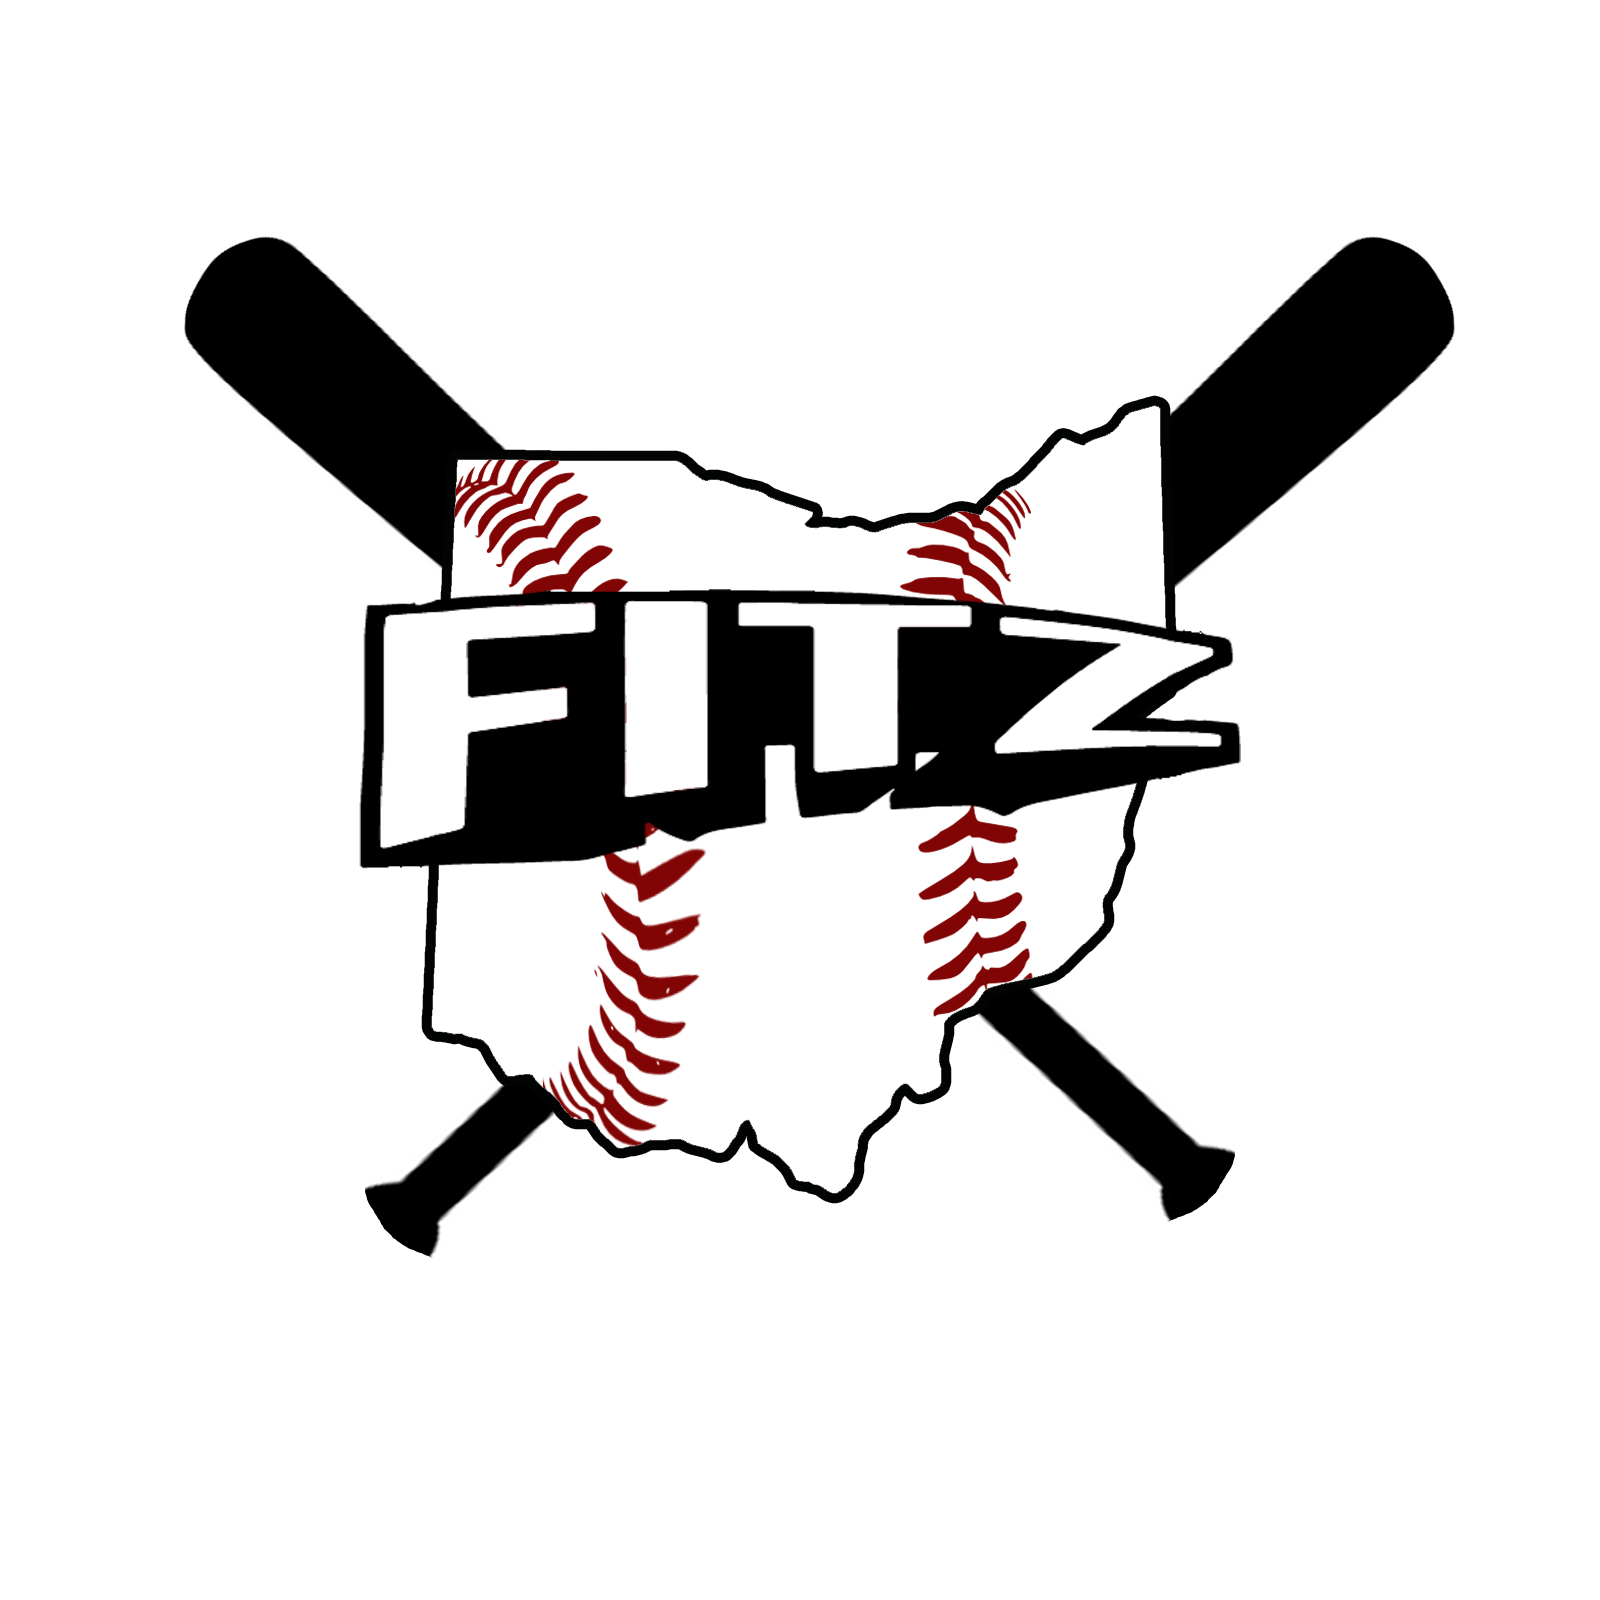 Baseball clipart strike zone banner transparent FITZ - Fearless In The Zone - Baseball Skills Training|Pitching ... banner transparent